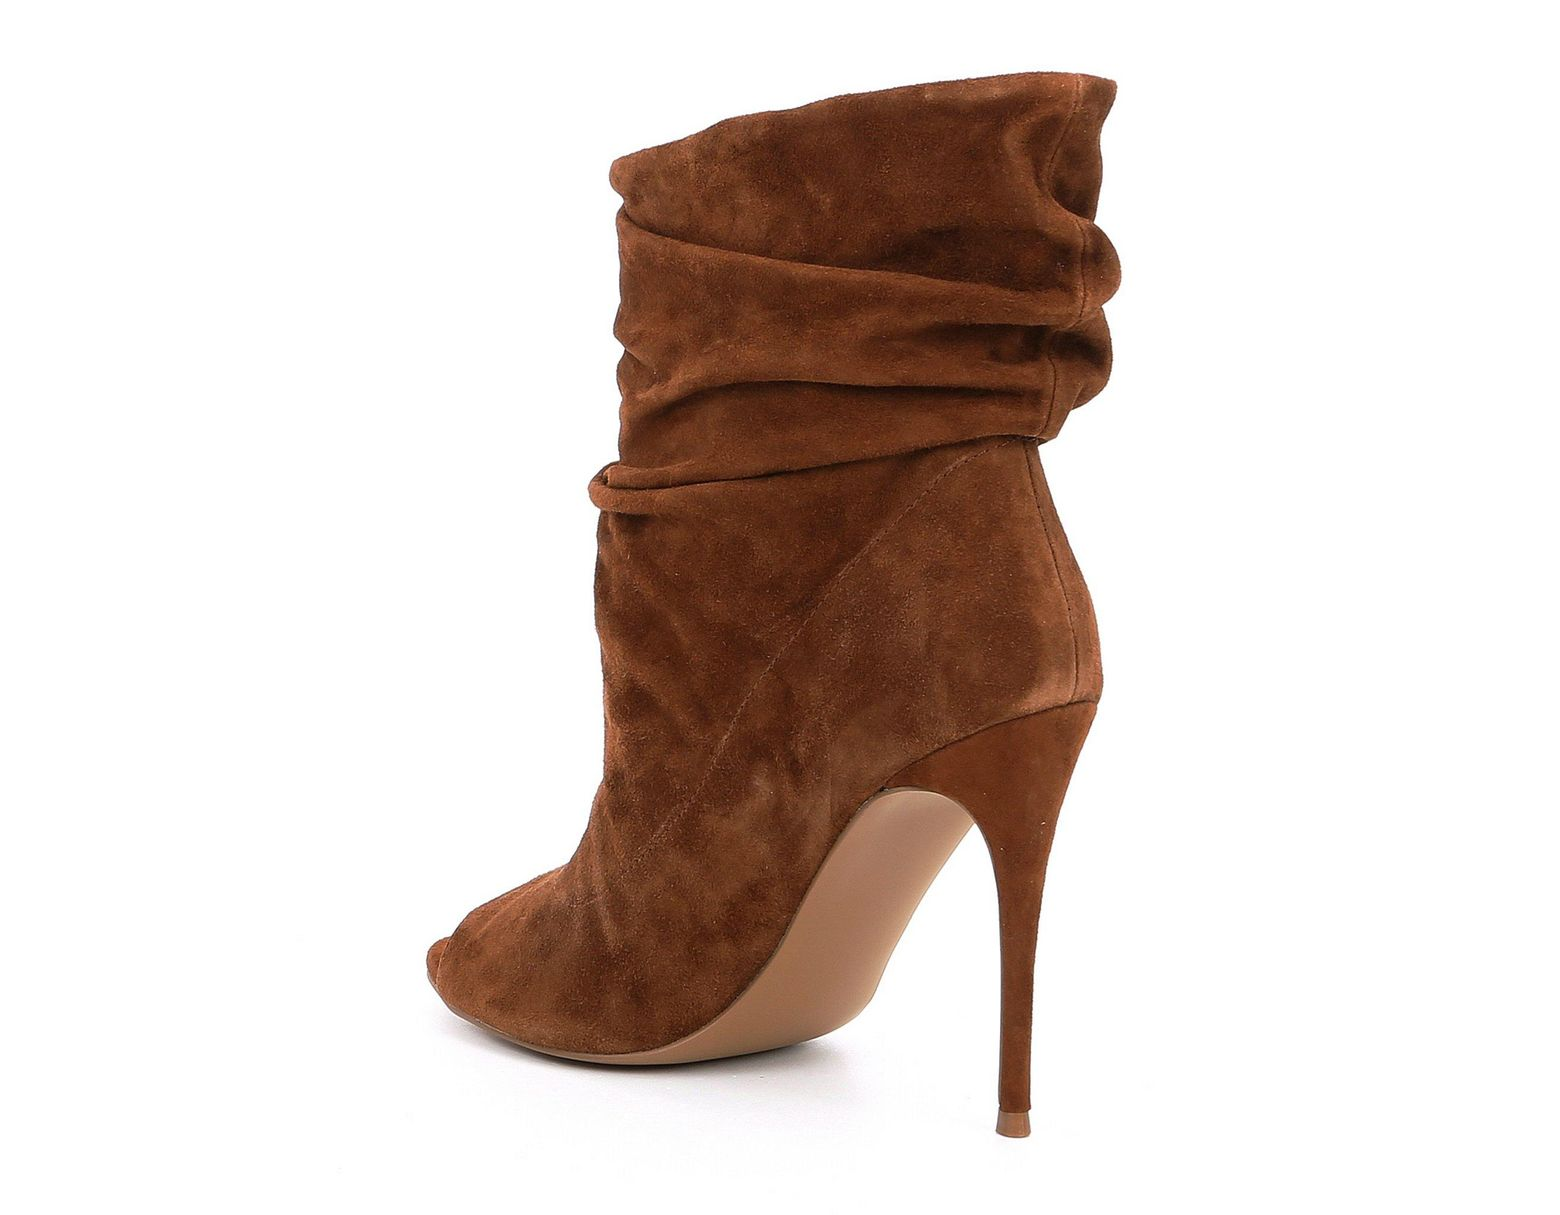 ad9b921db Steve Madden Surrender Slouched Suede Stiletto Peep Toe Booties in Brown -  Lyst